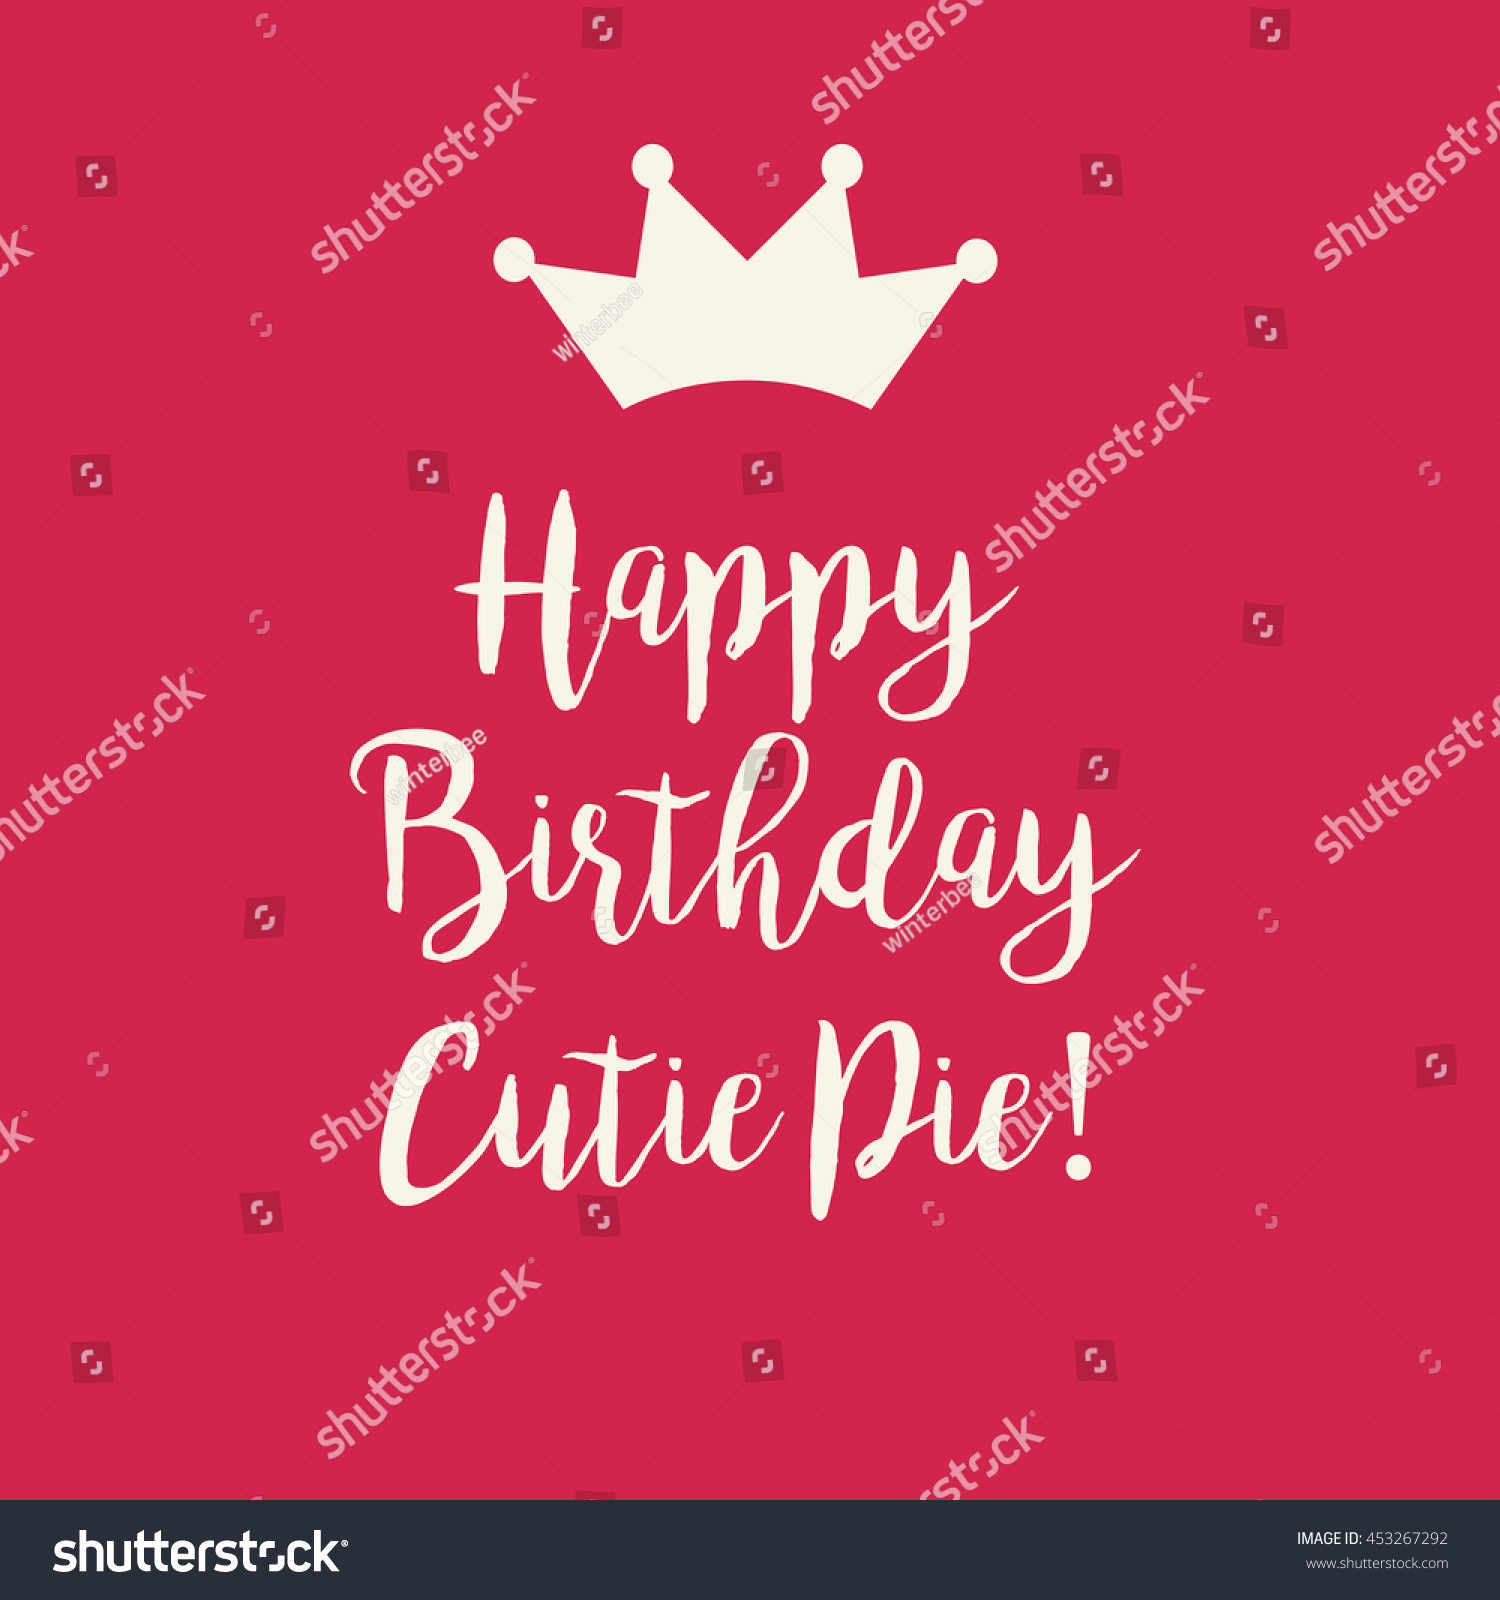 Cute Happy Birthday Cutie Pie Card With A Text And Princess Crown On Red